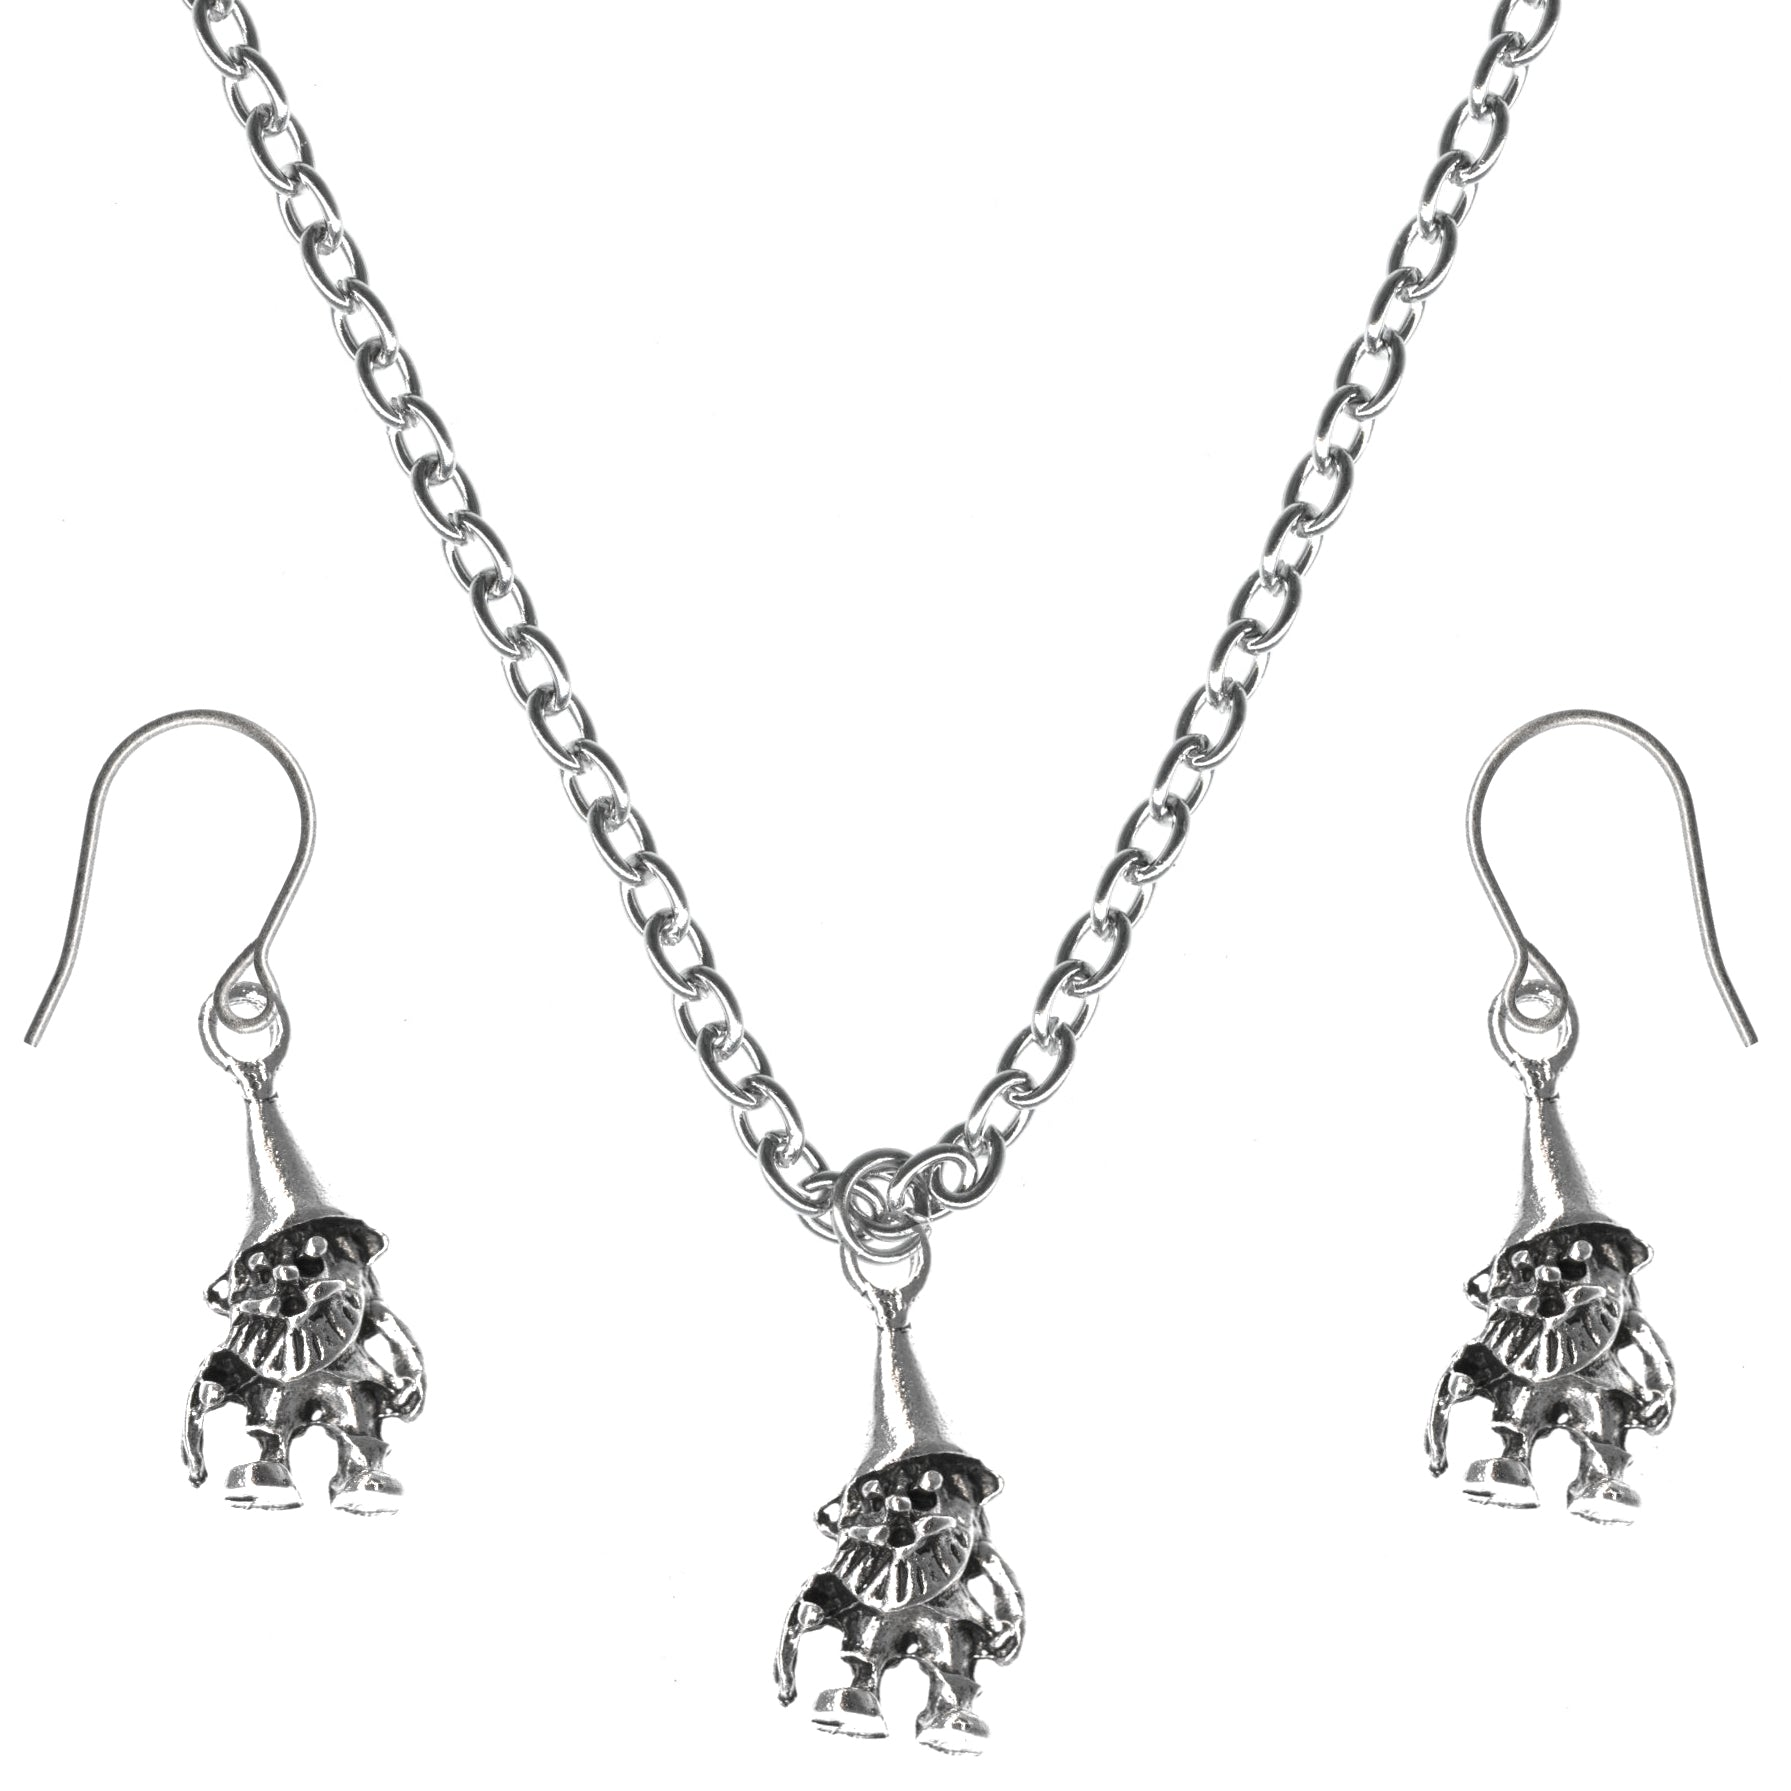 Gnome Charm Steel Chain Necklace and Hypoallergenic Titanium Earrings Set